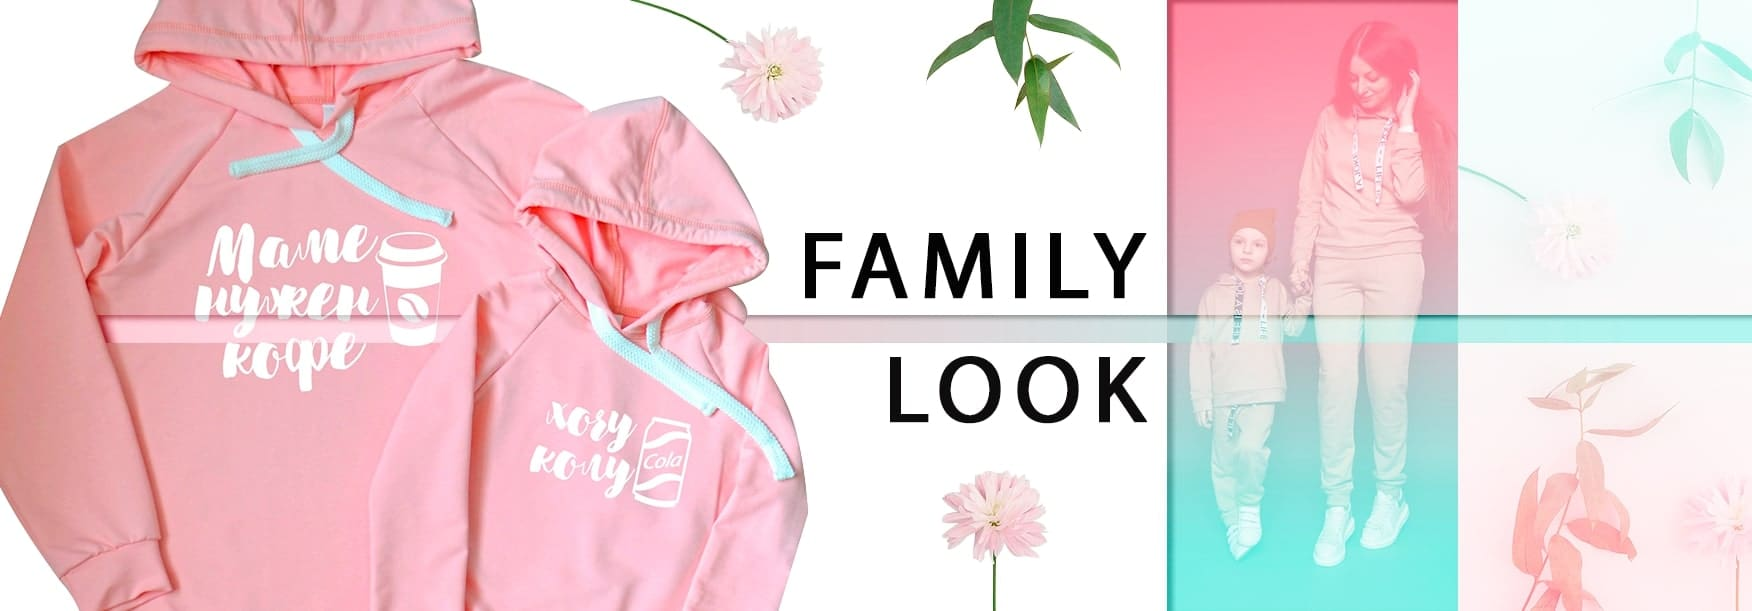 Family look